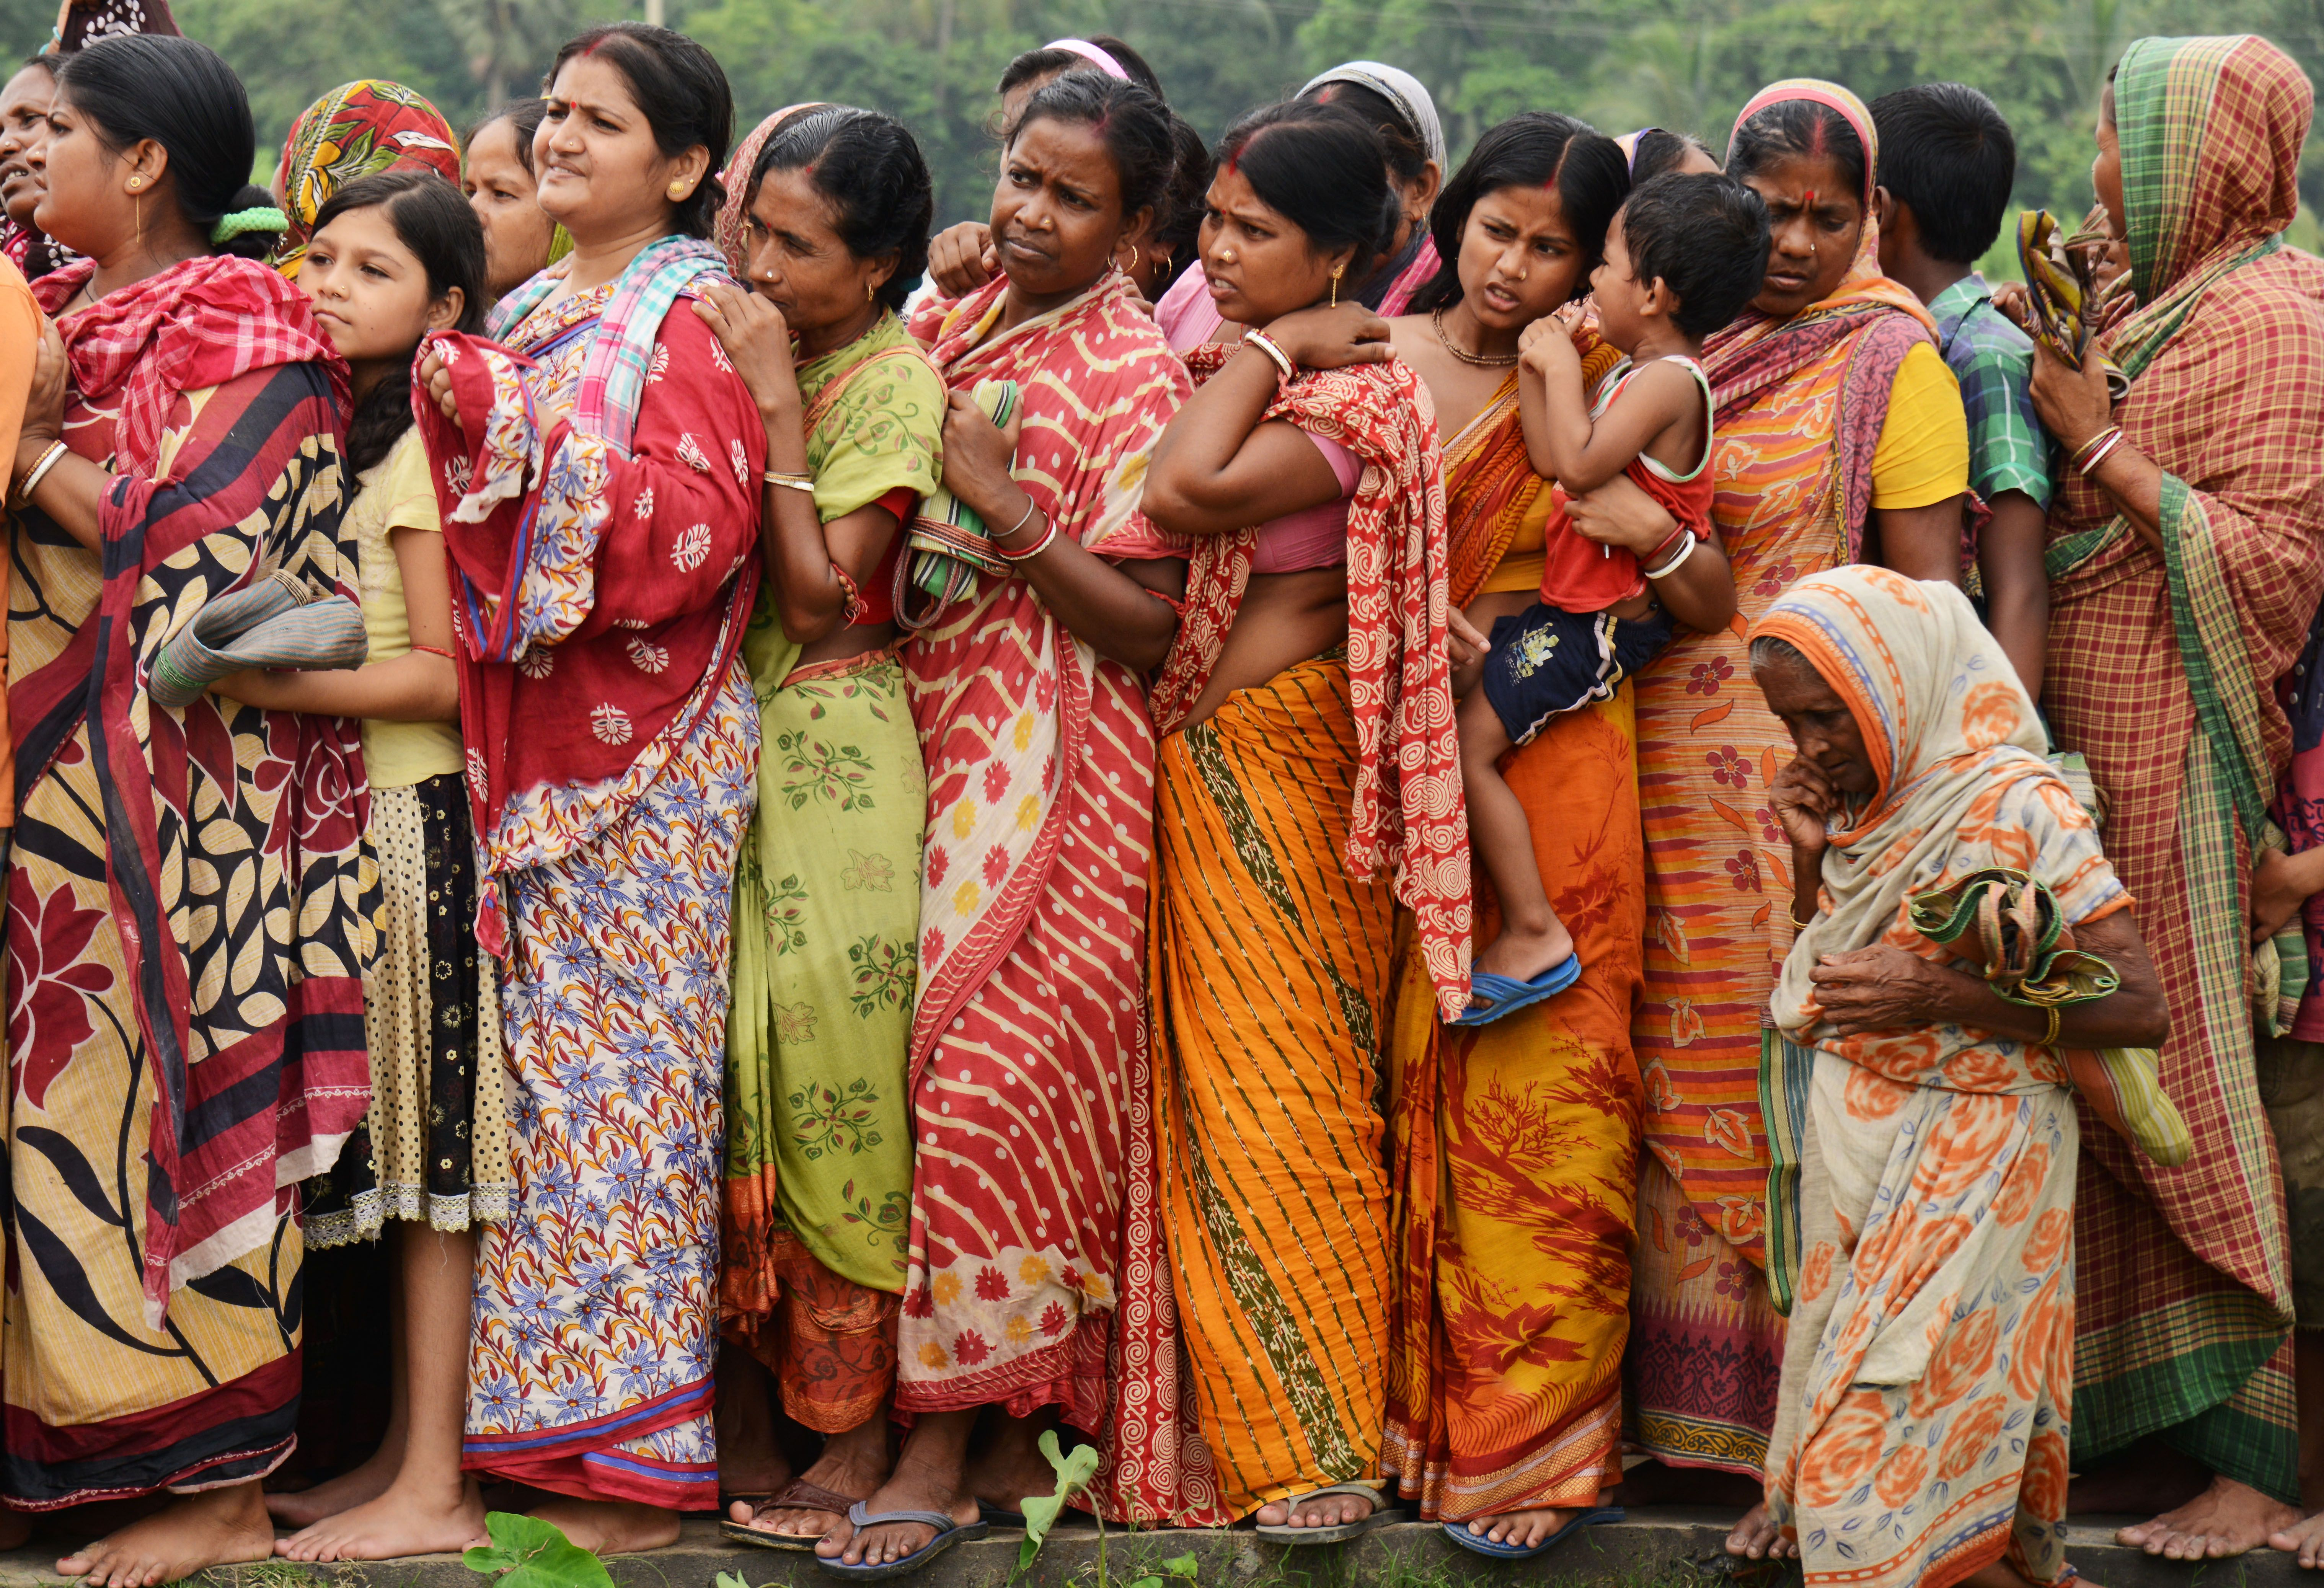 Indian flood victims wait in a queue to collect relief materials in Chitnan village, around 60 km West of Kolkata, on July 28, 2017.